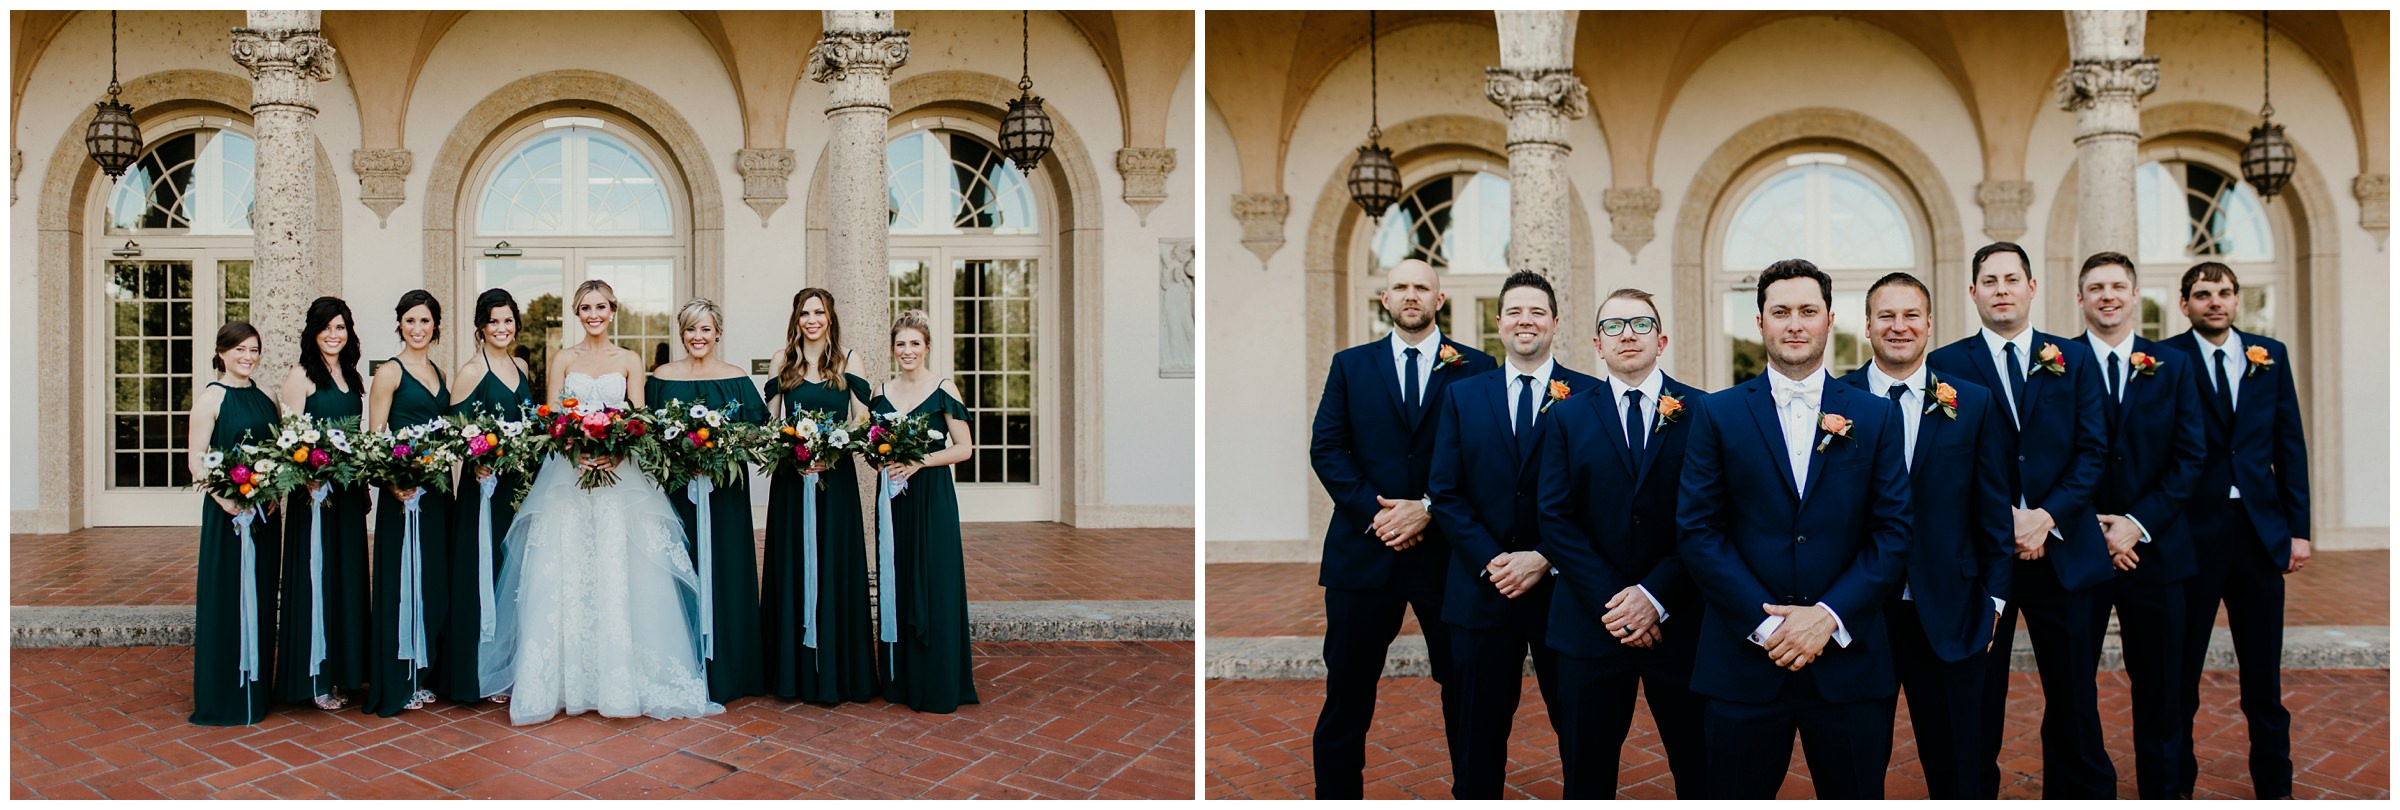 bridesmaids and groomsmen at philbrook museum wedding